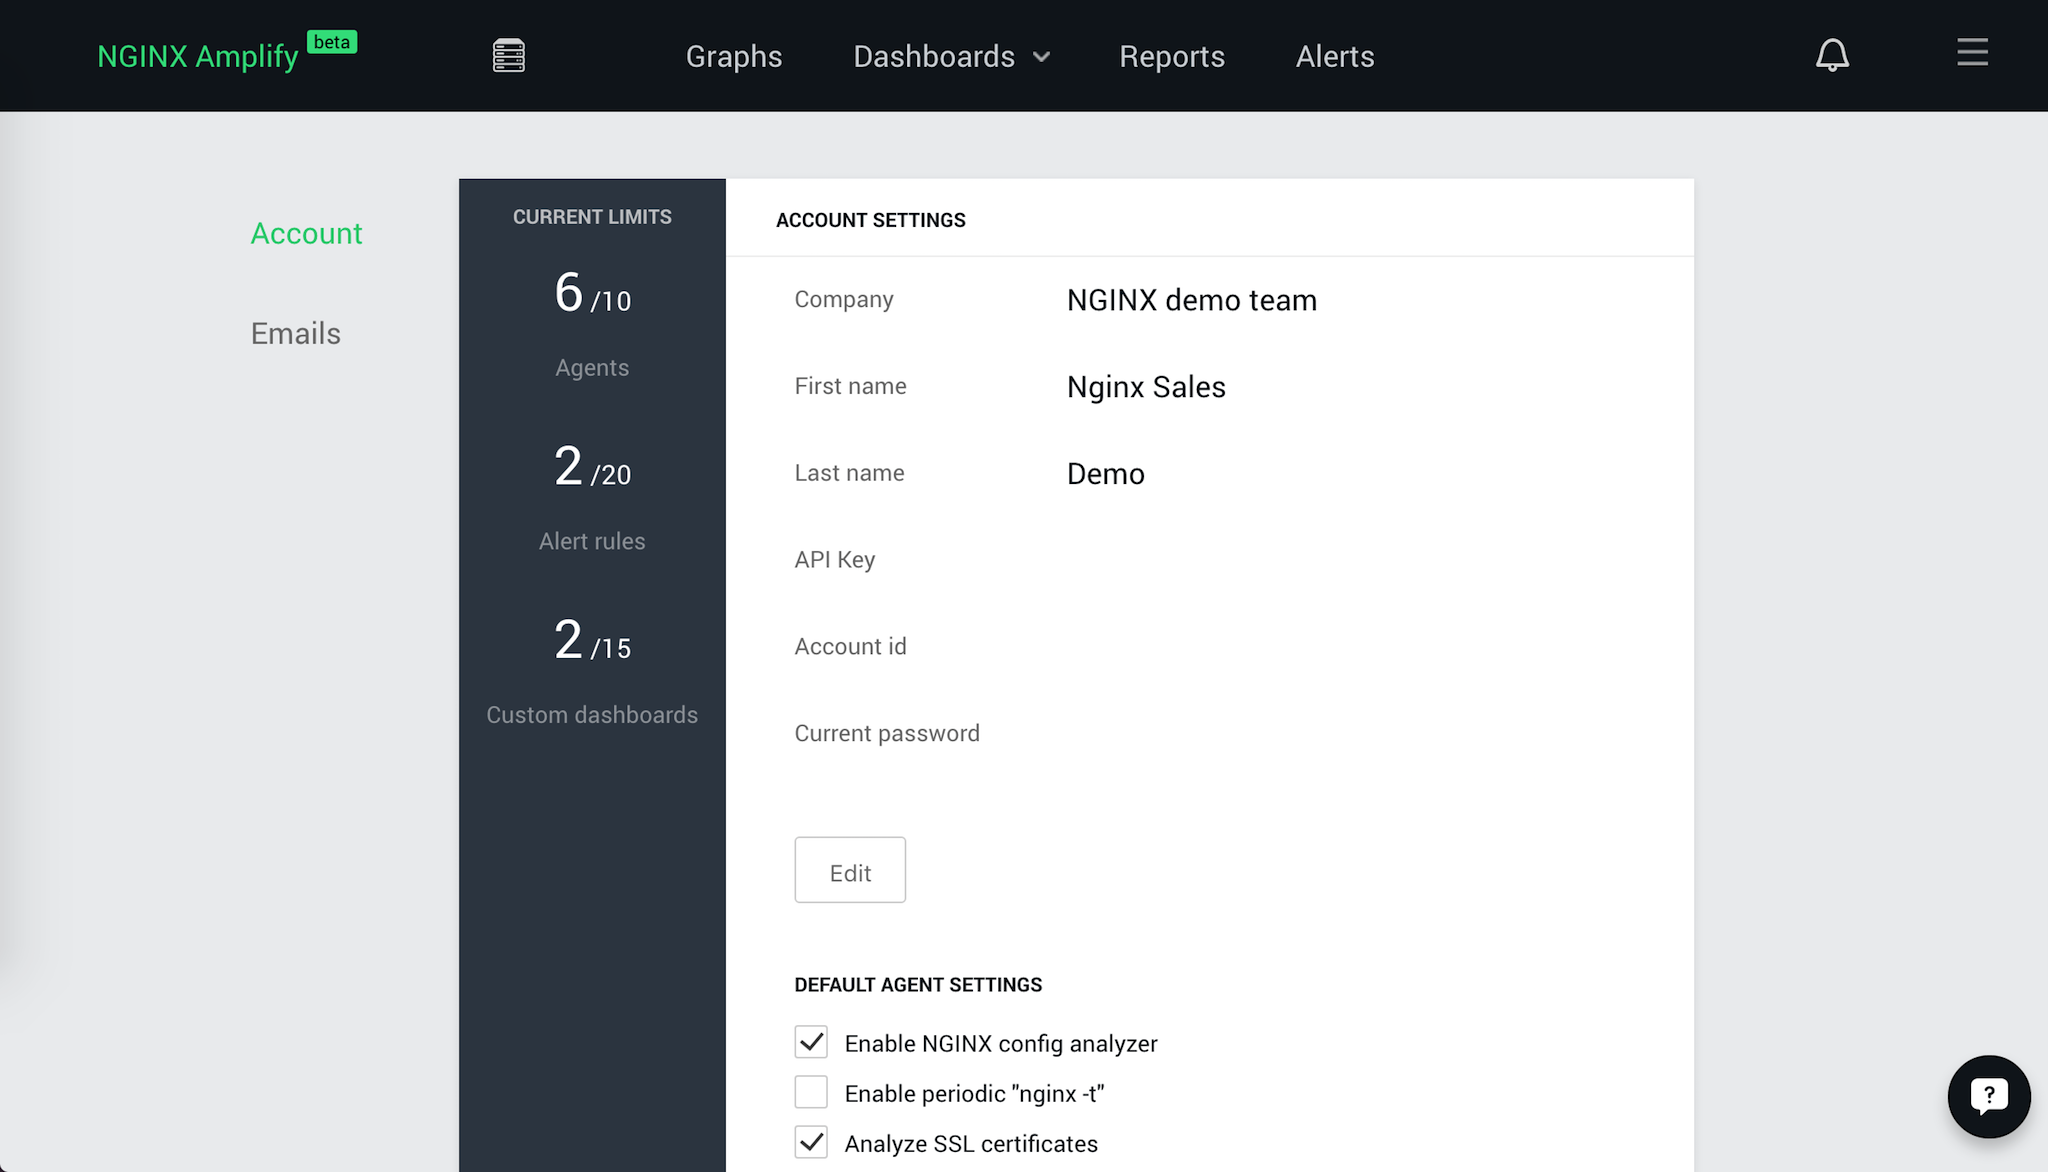 The 'Account Settings' panel controls which types of NGINX configuration analysis are included in NGINX Amplify reporting